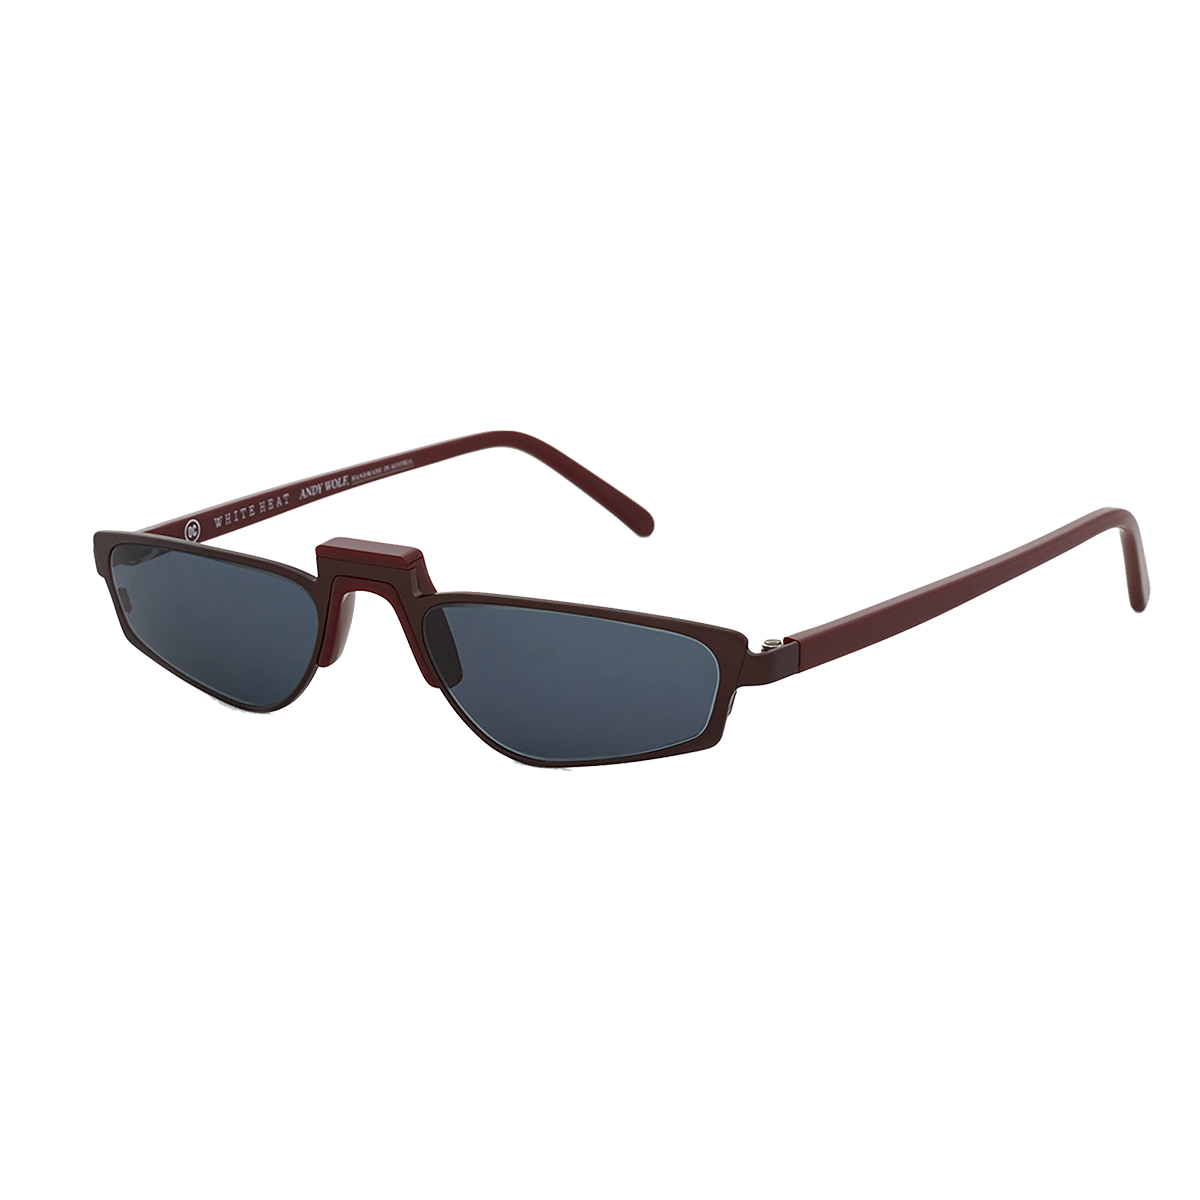 Andy Wolf X Opening Ceremony Sunglasses